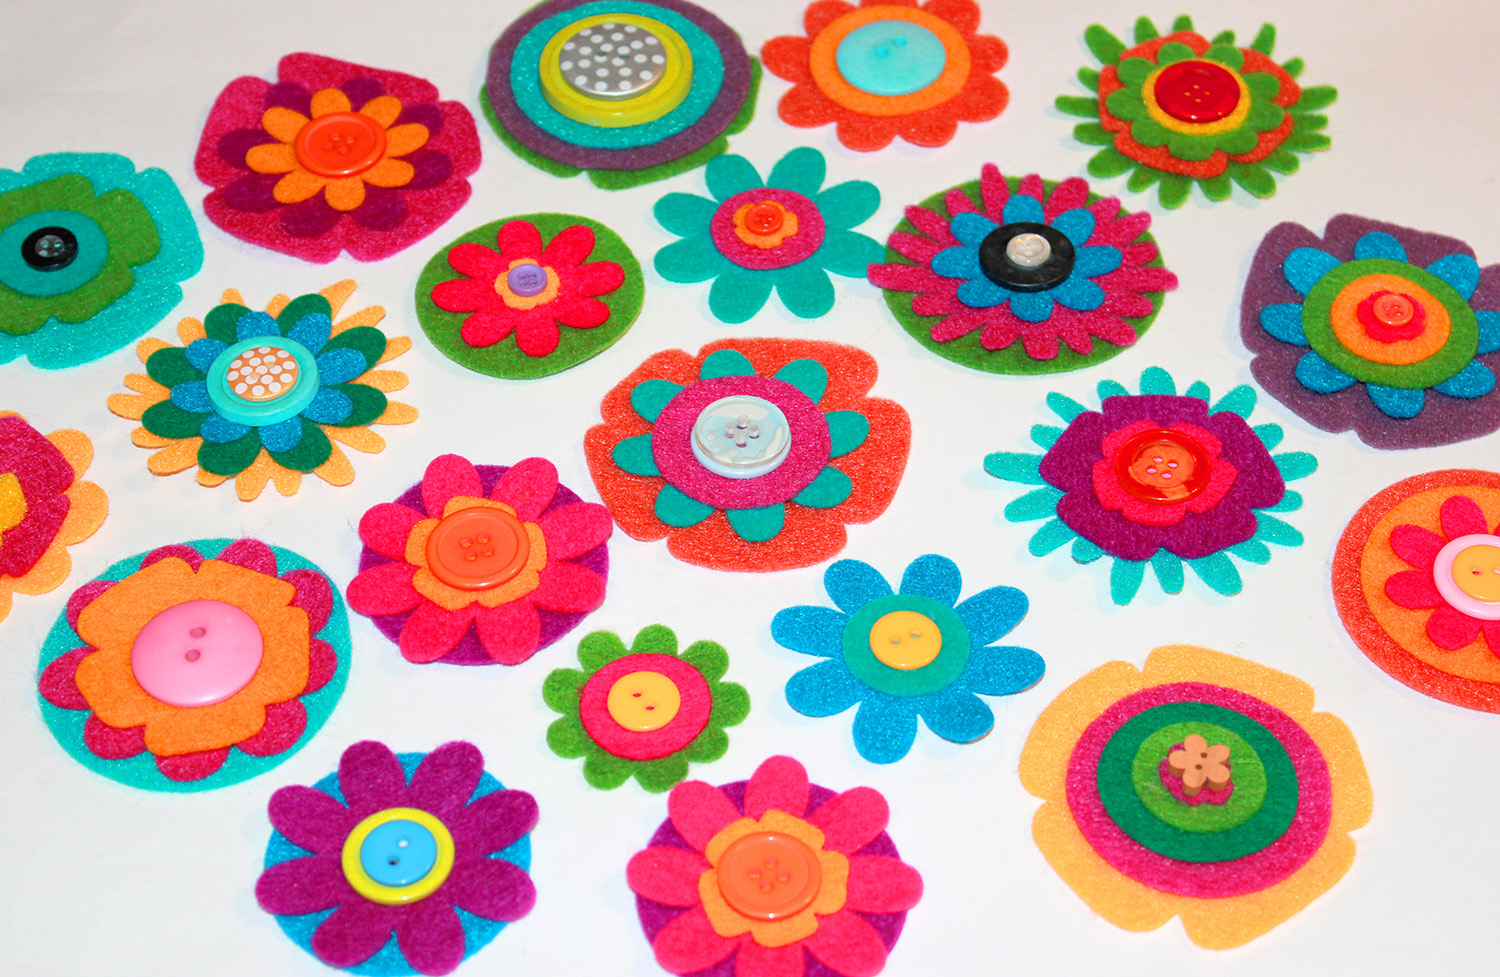 Finish the center of each flower by gluing on a colorful button, or layering two different sized buttons to create even more dimension.